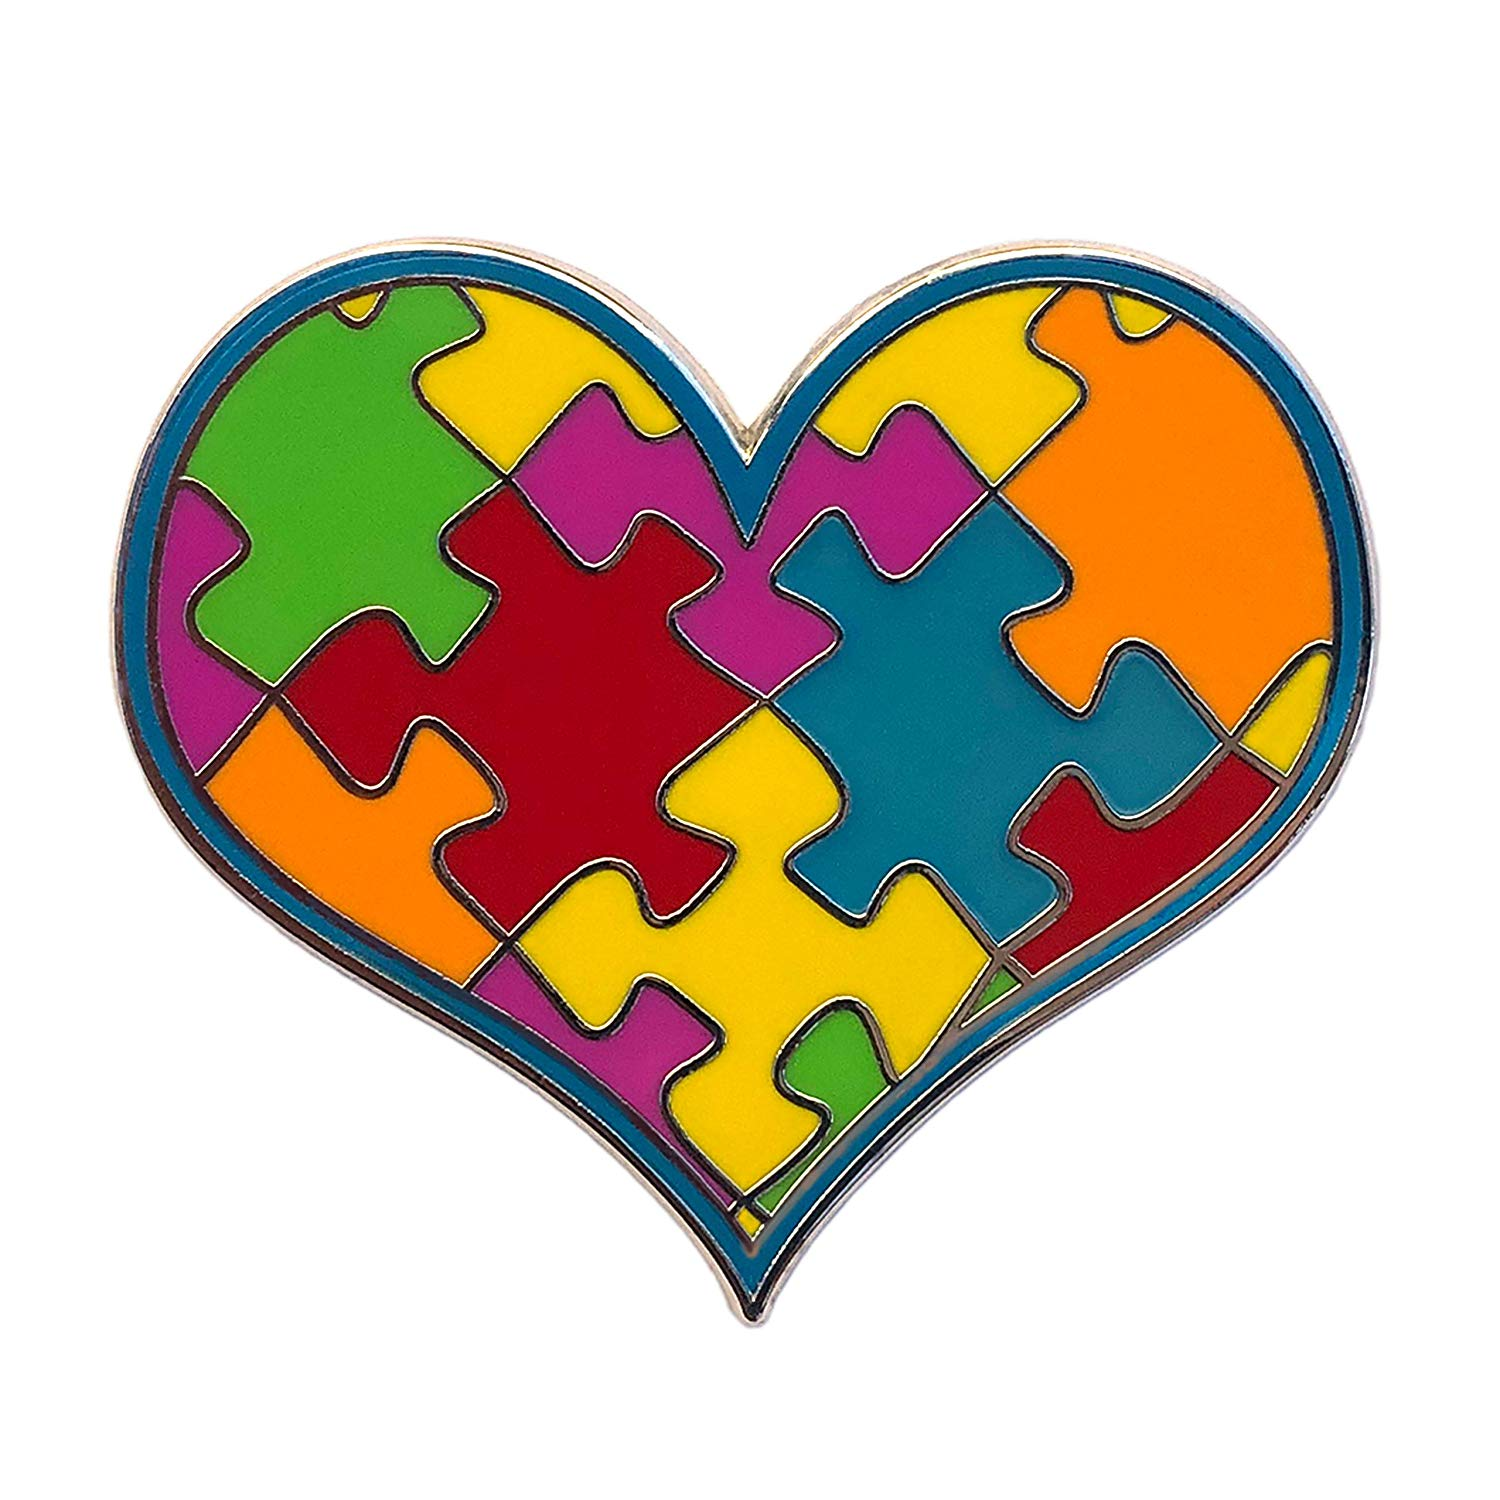 ILMS Autism Awareness Pin. 1.